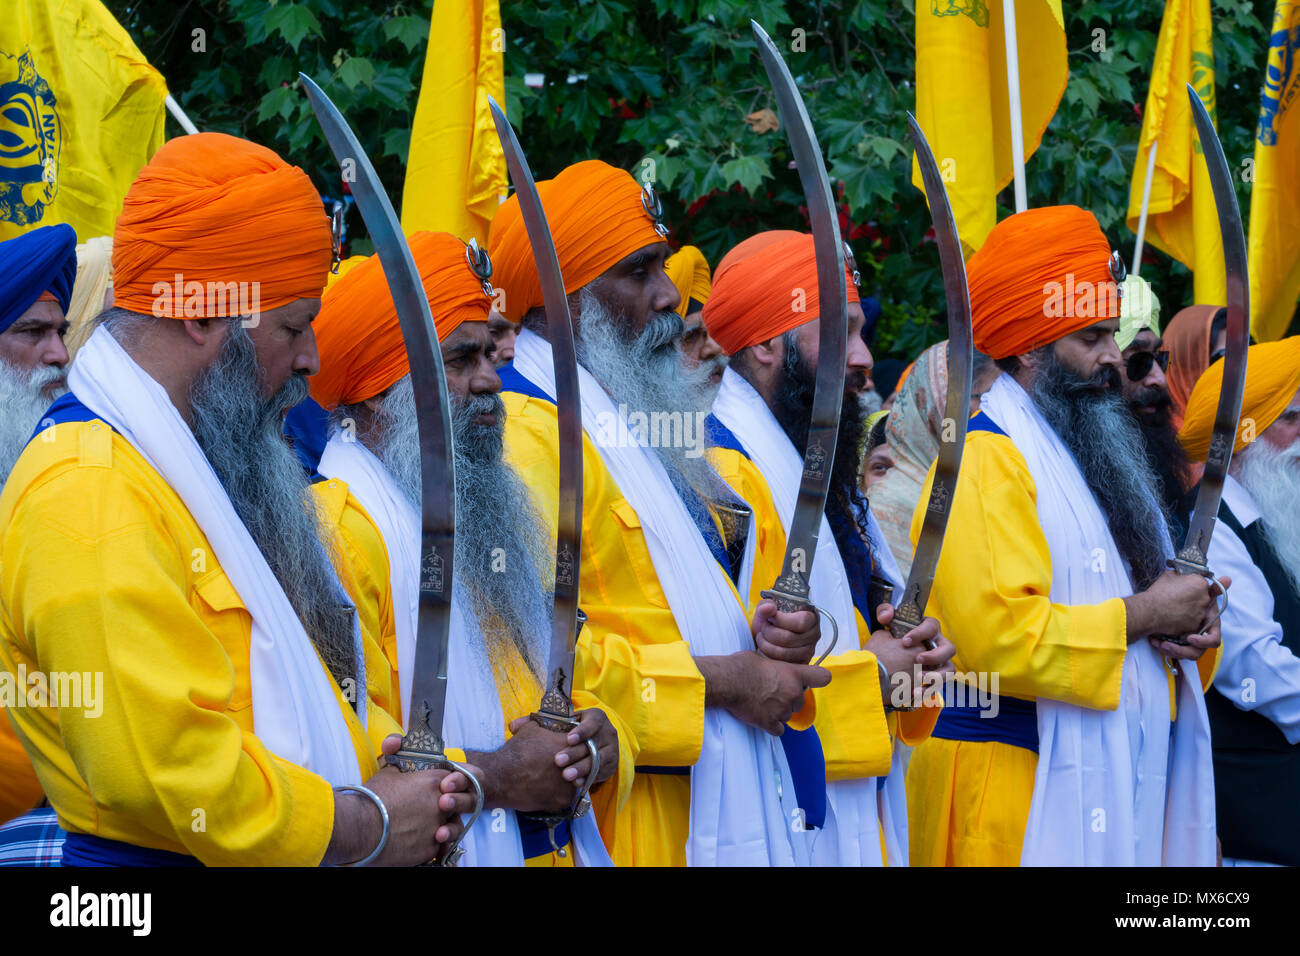 london-uk-3rd-june-2018-annual-sikh-ghallughara-remembrance-march-and-freedom-rally-commemorating-the-june-1984-anniversary-of-the-indian-army-attack-on-darbar-sahib-this-marked-the-beginning-of-the-third-ghallughara-third-holocaust-of-sikh-history-this-years-theme-is-truth-justice-and-freedom-the-march-proceeded-from-hyde-park-through-central-london-to-a-rally-in-trafalgar-square-the-march-and-rally-was-organised-by-the-federation-of-sikh-organisations-credit-stephen-bellallamy-live-news-MX6CX9.jpg